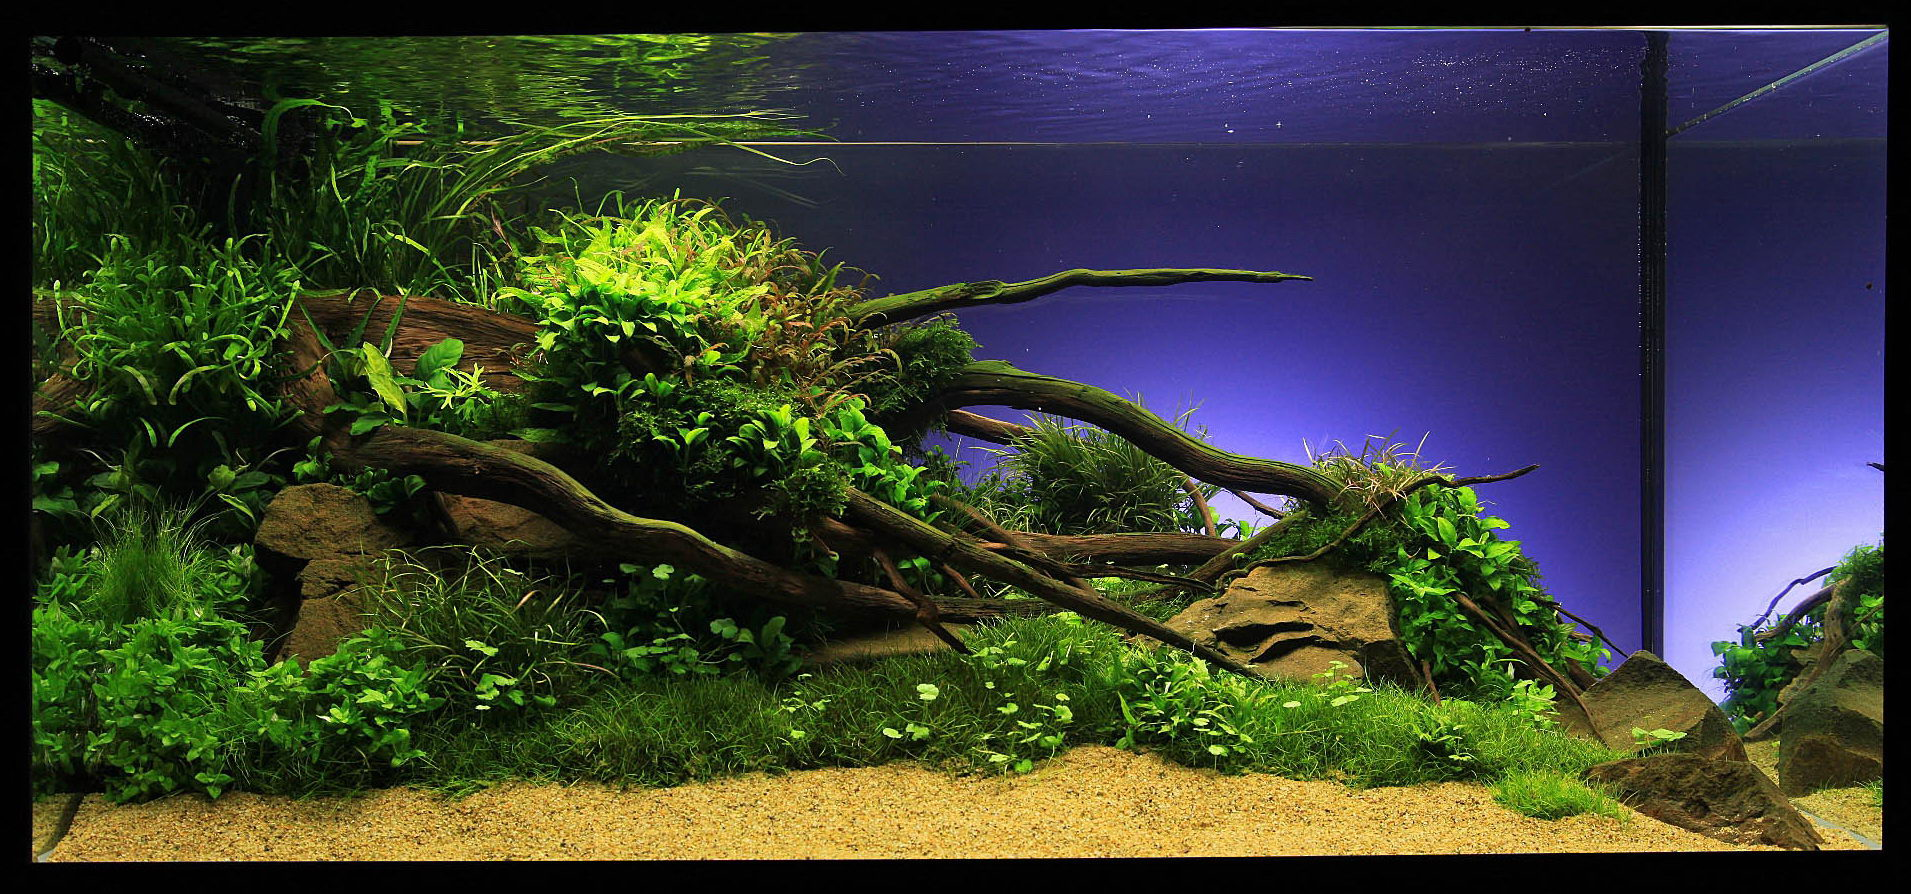 Marcel dykierek and aquascaping aqua rebell - Design aquasacpe ...